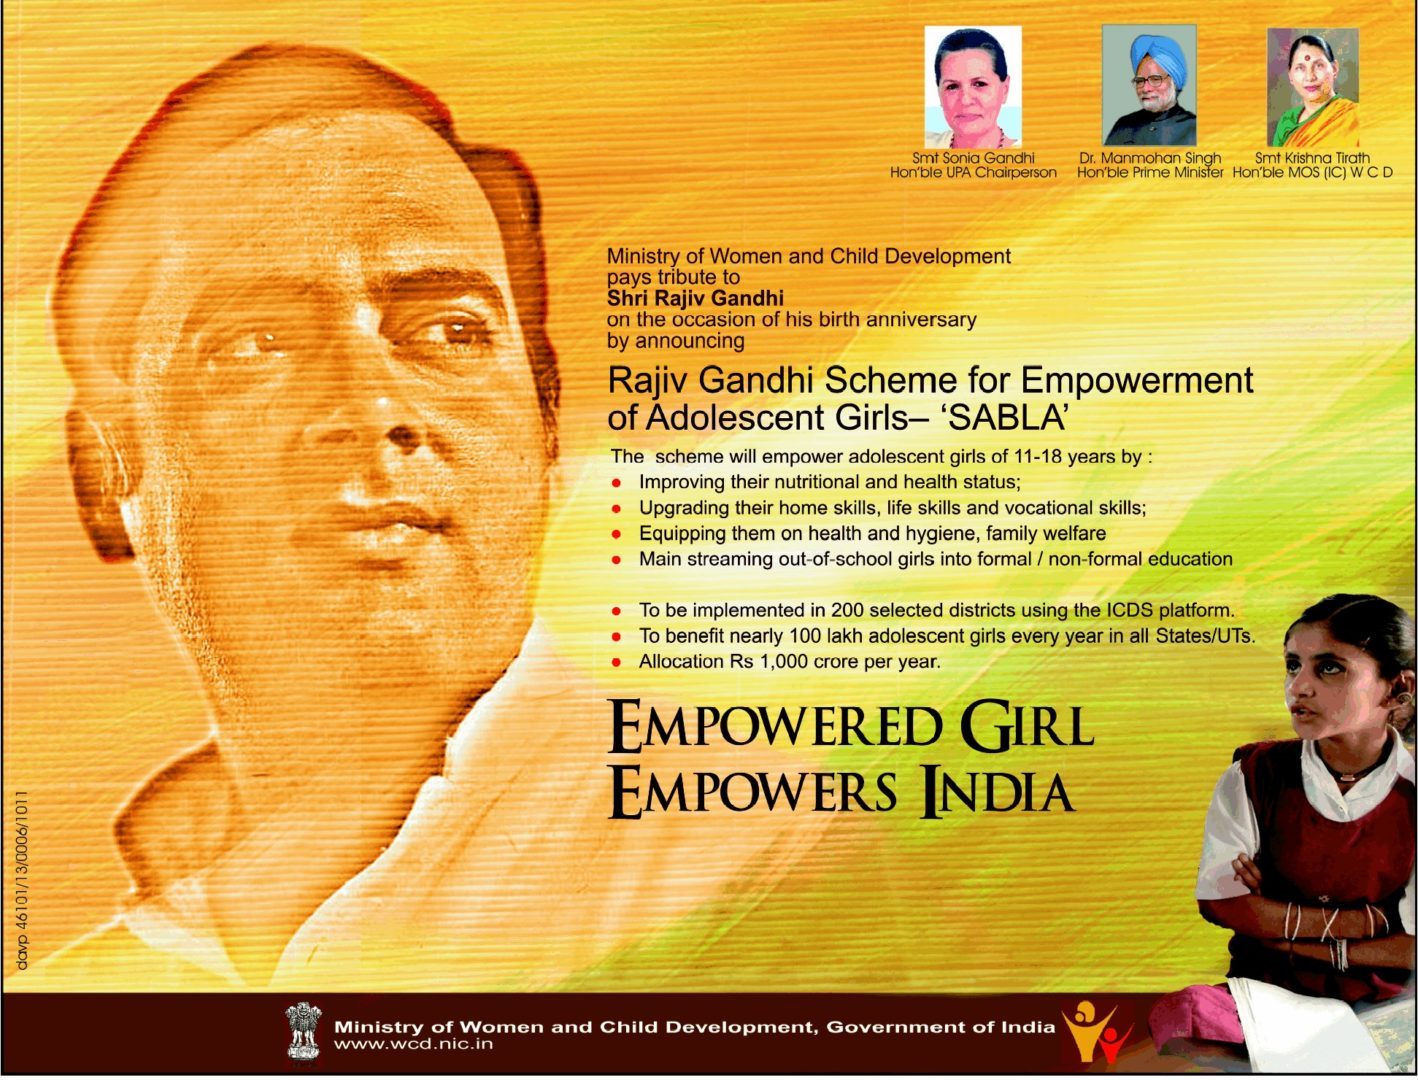 What is the Rajiv Gandhi Scheme for Empowerment of Adolescent Girls – Sabla